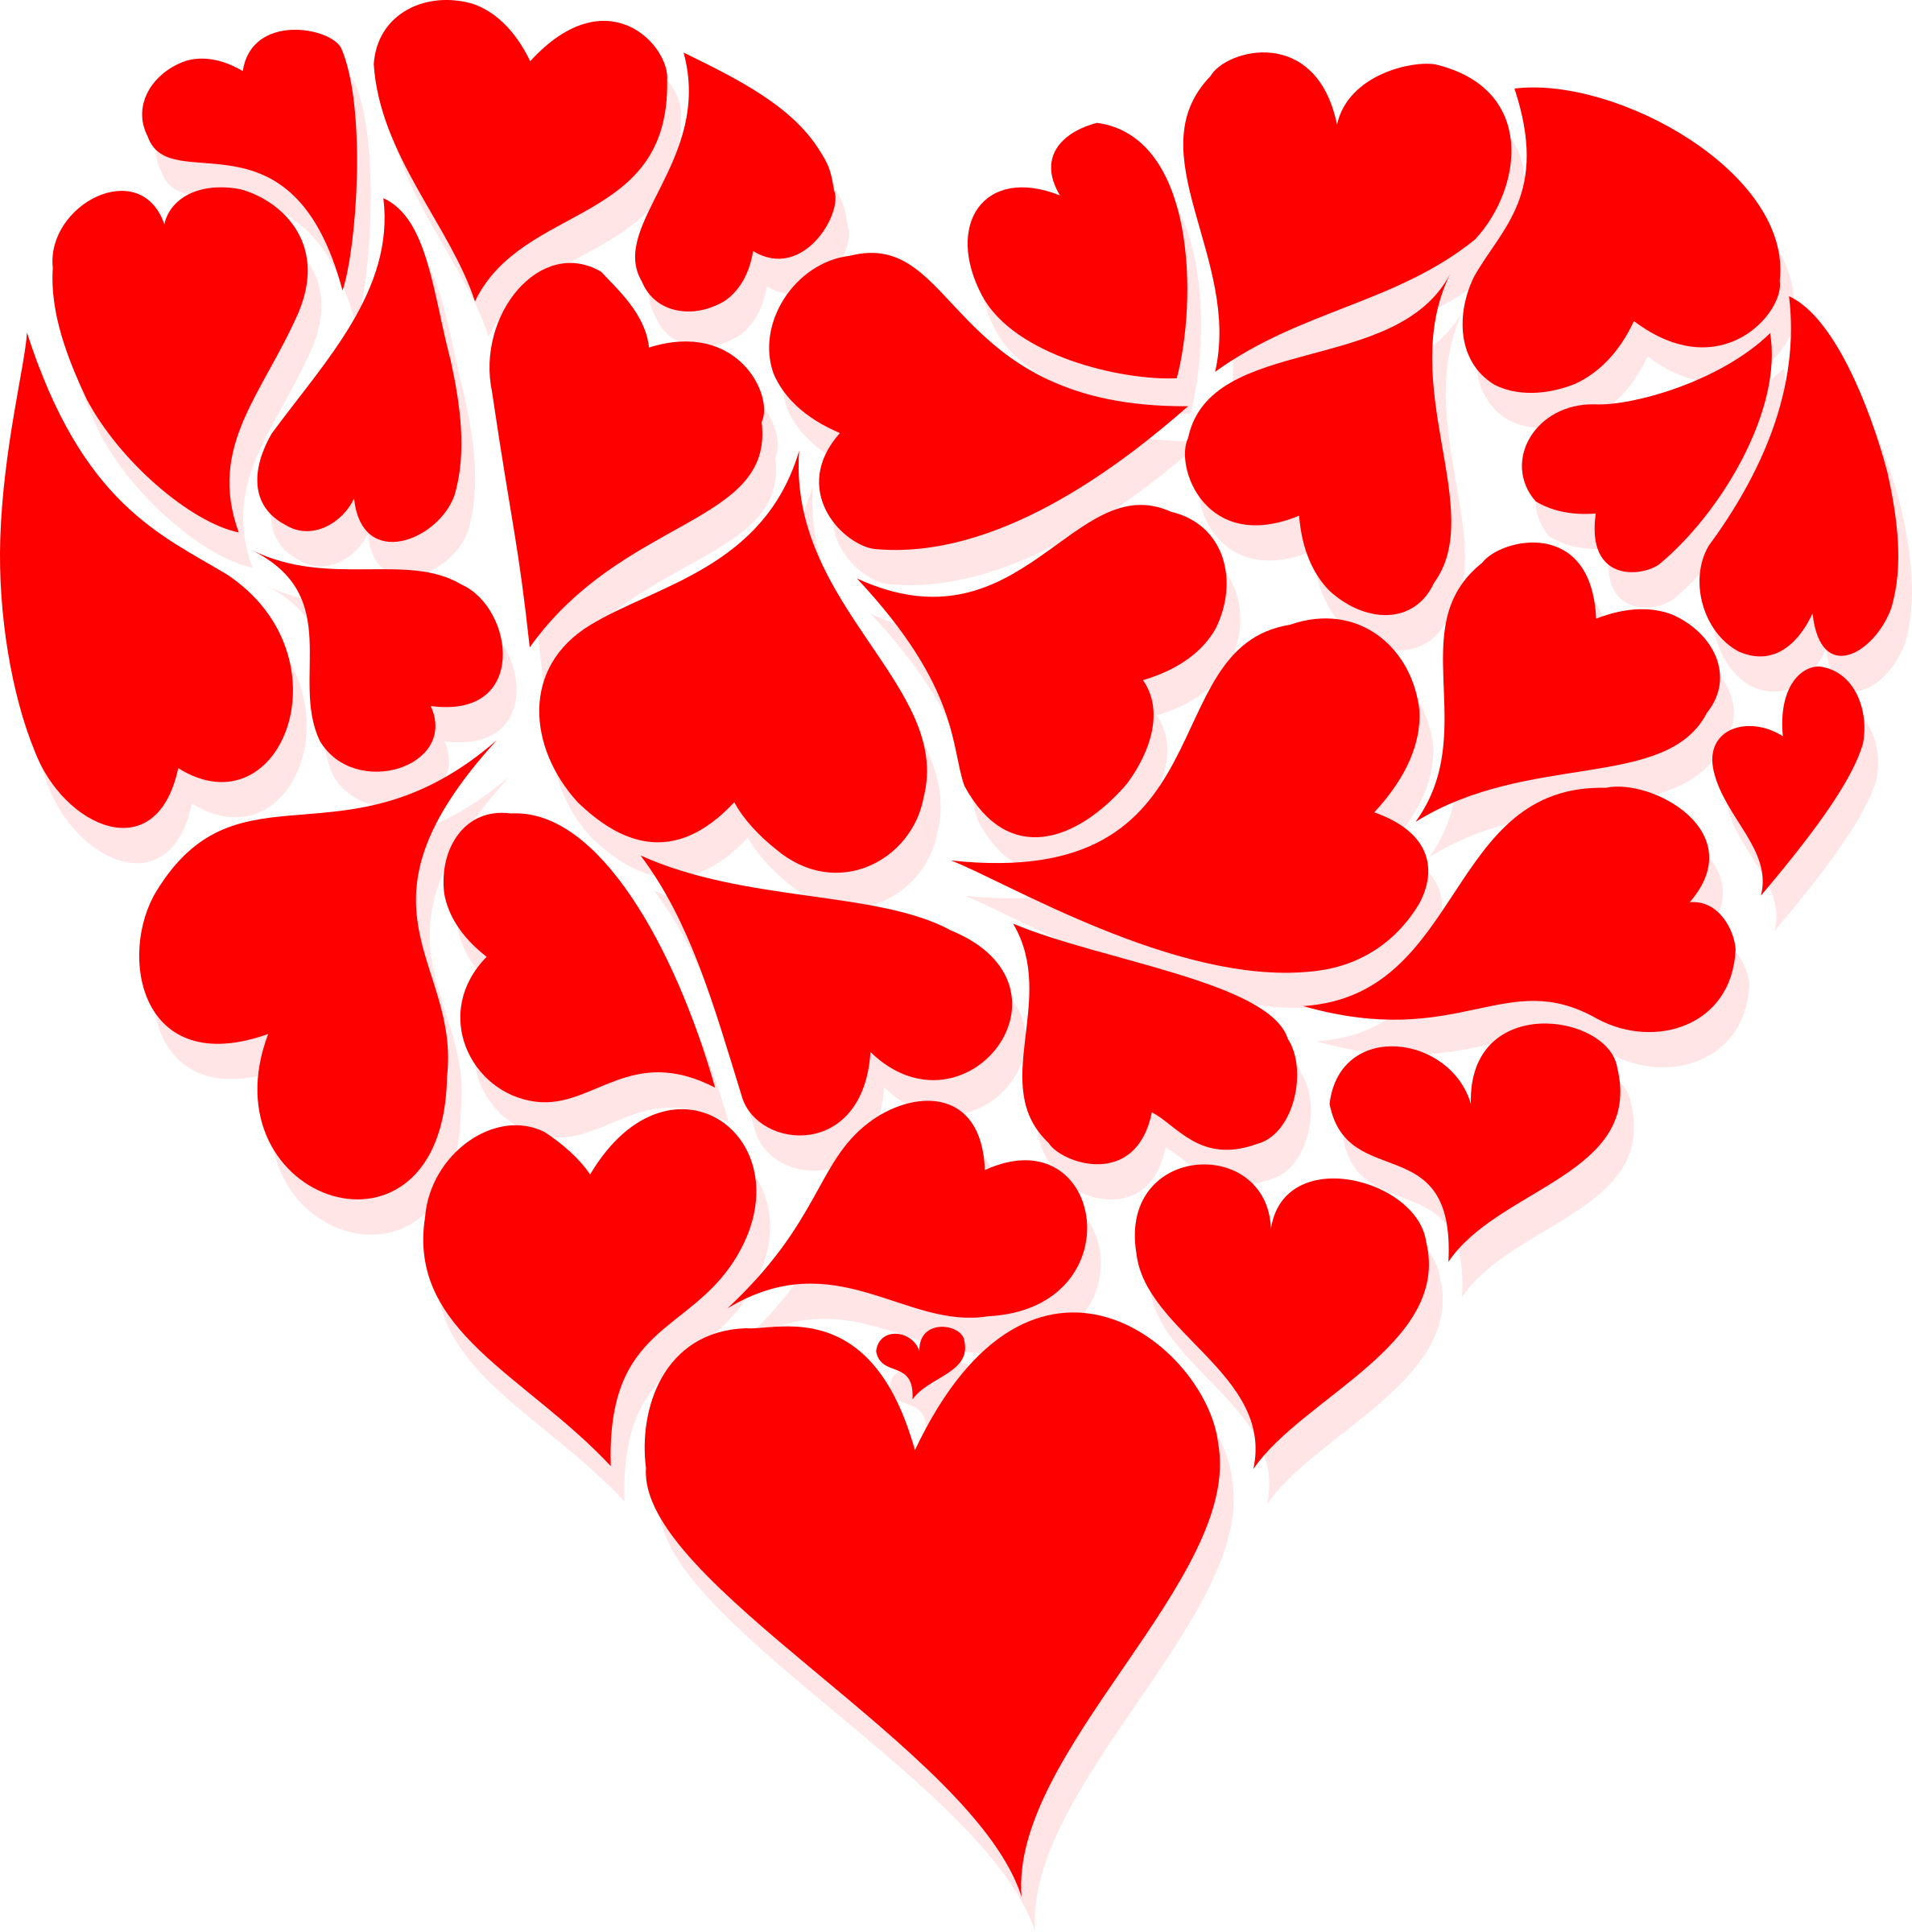 Clipart fox valentines day. Hearts for valentine s